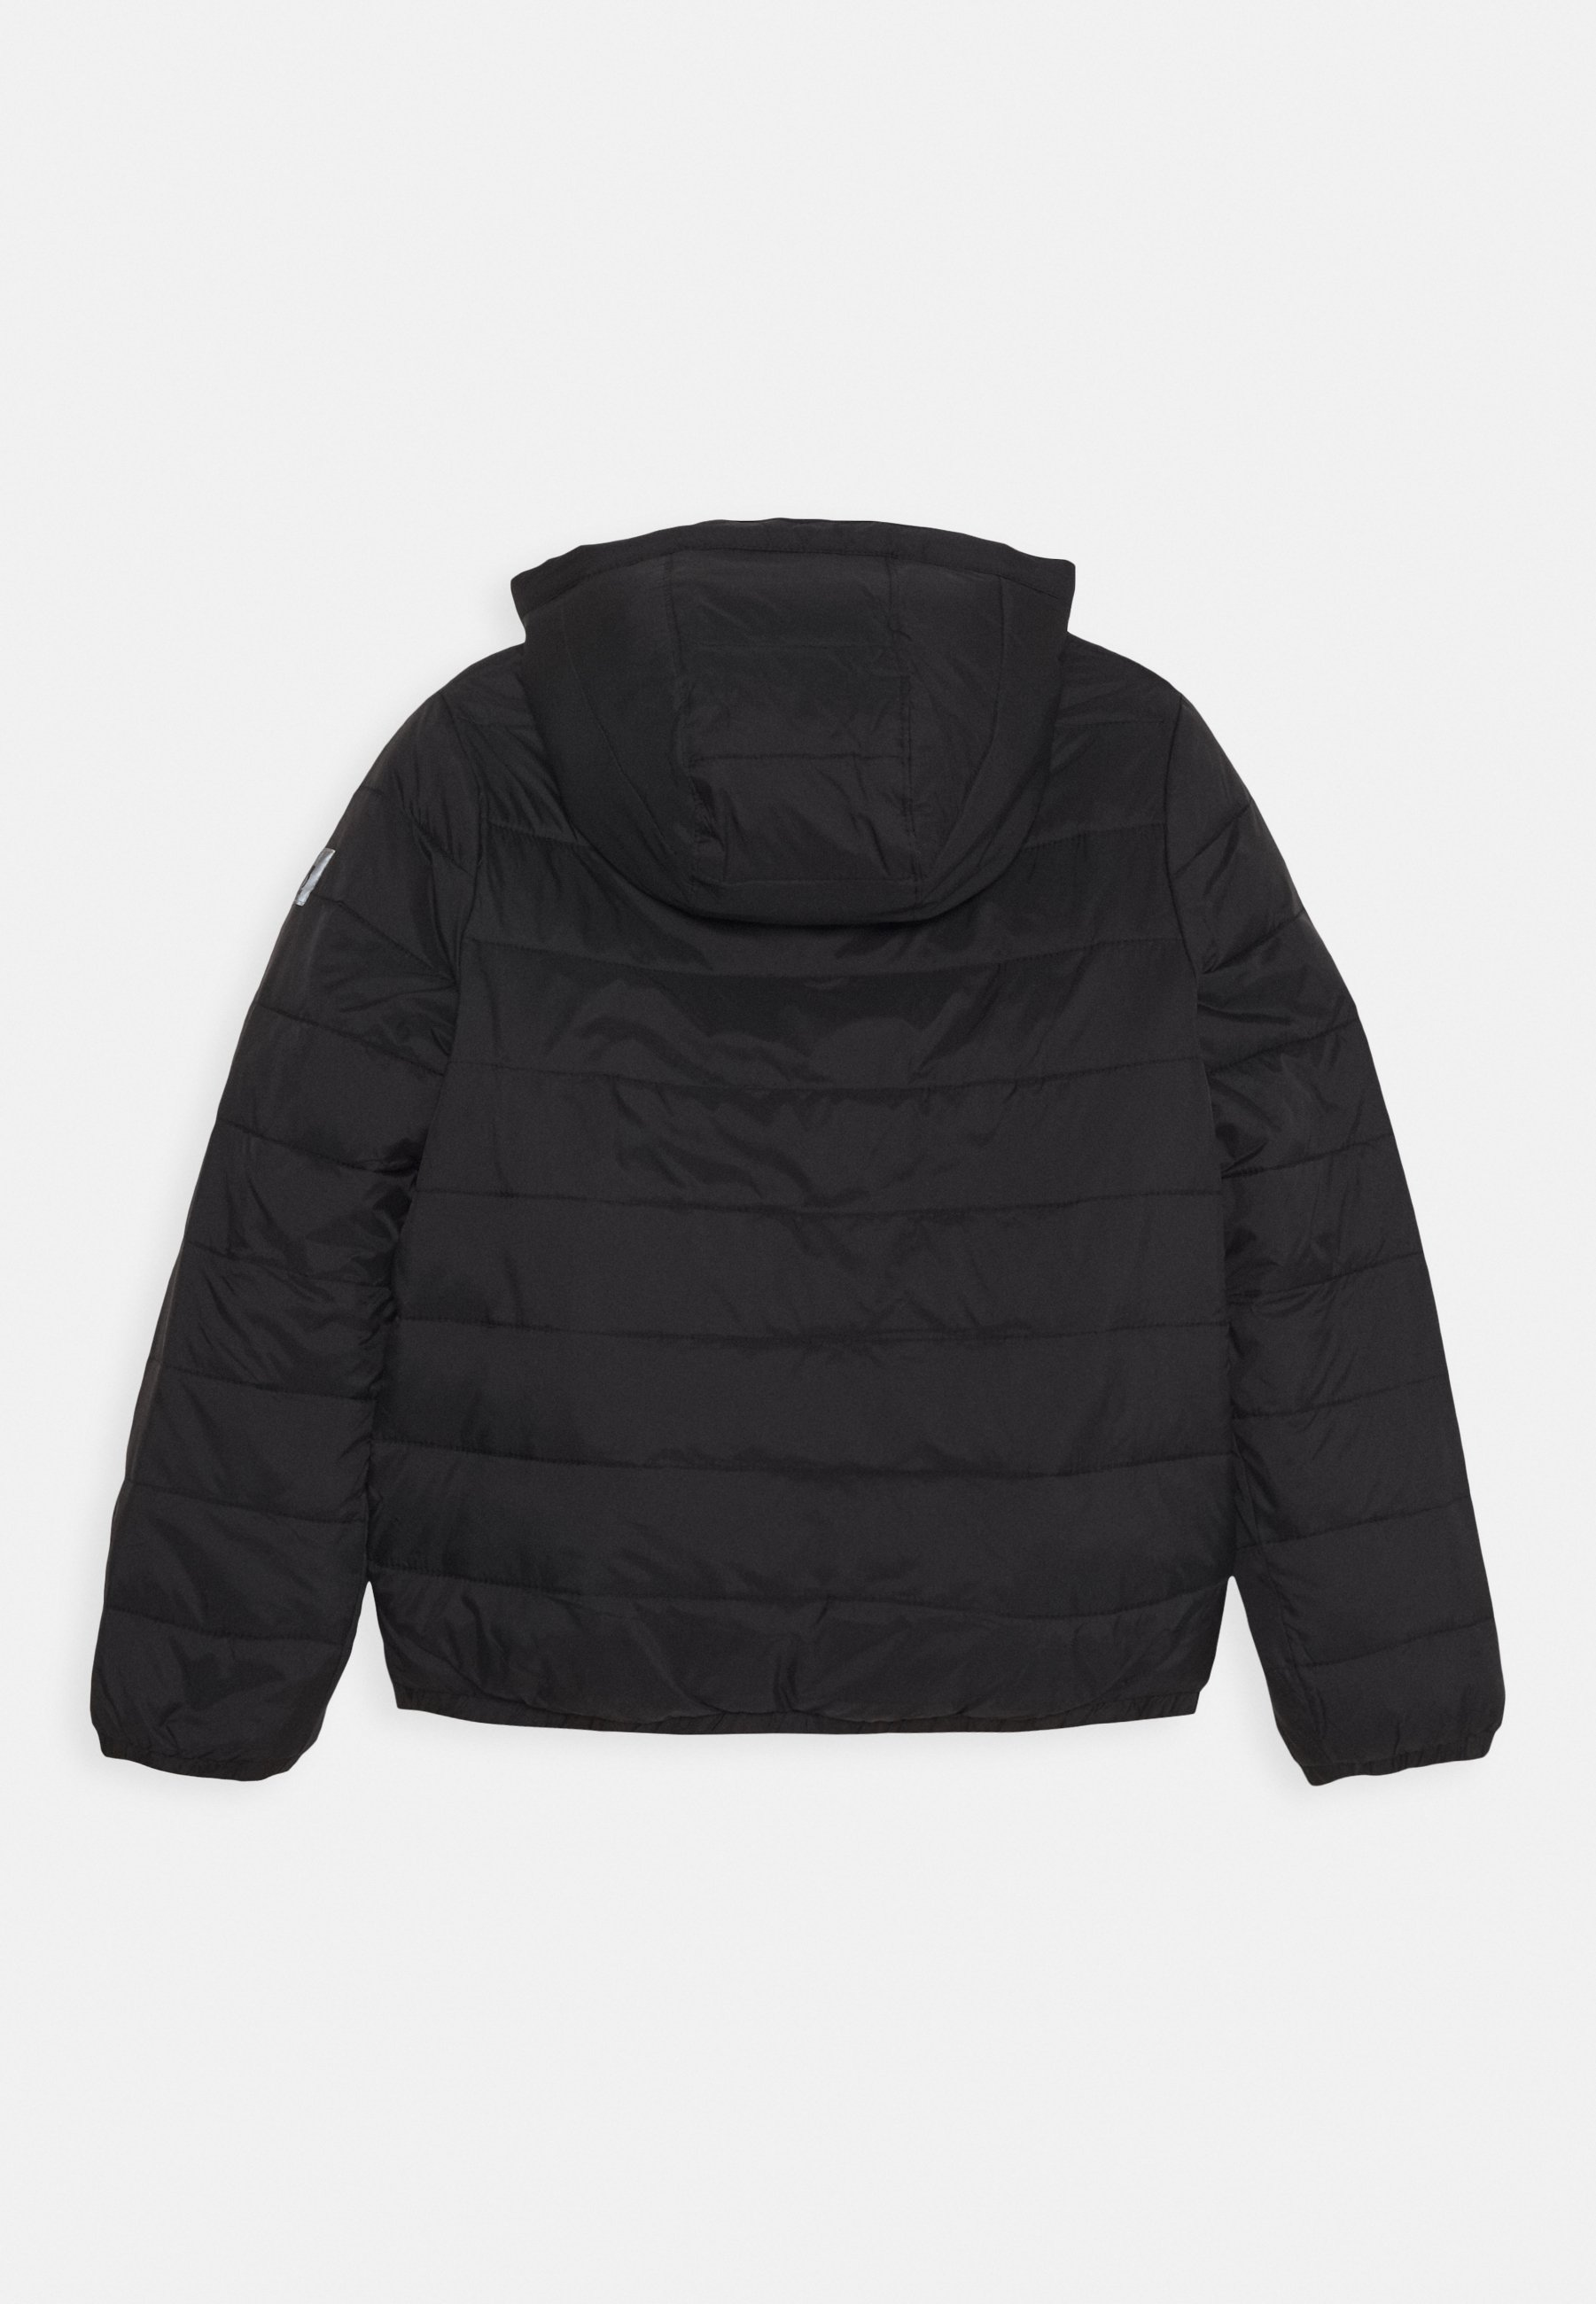 Abercrombie & Fitch Cozy Puffer - Winter Jacket Black